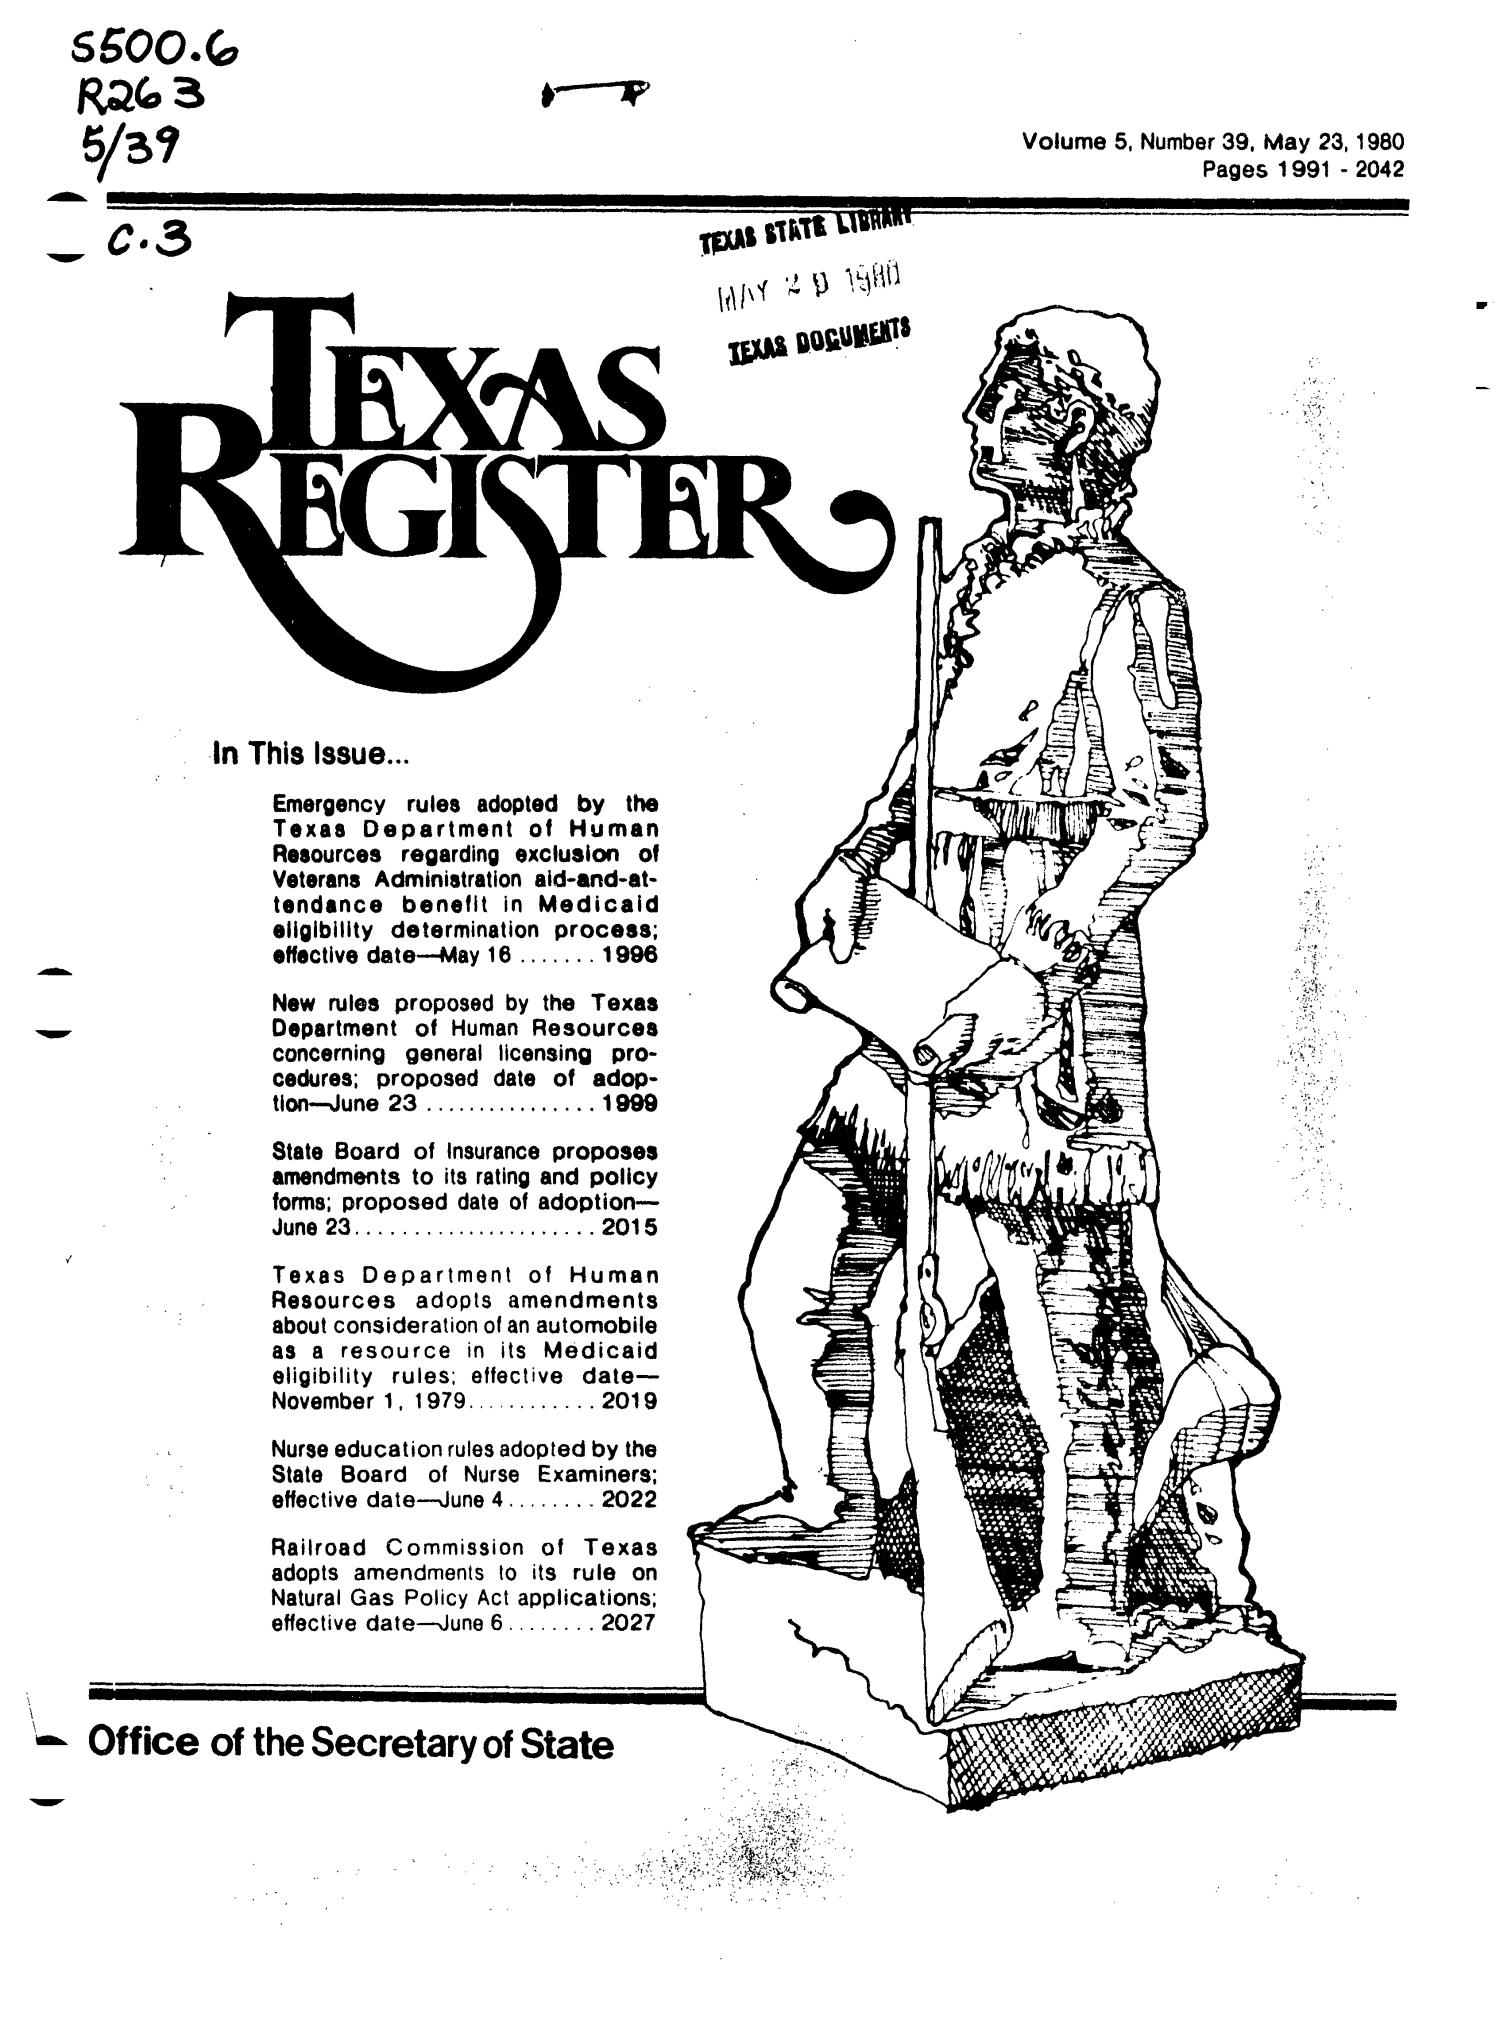 Texas Register, Volume 5, Number 39, Pages 1991-2042, May 23, 1980                                                                                                      Title Page